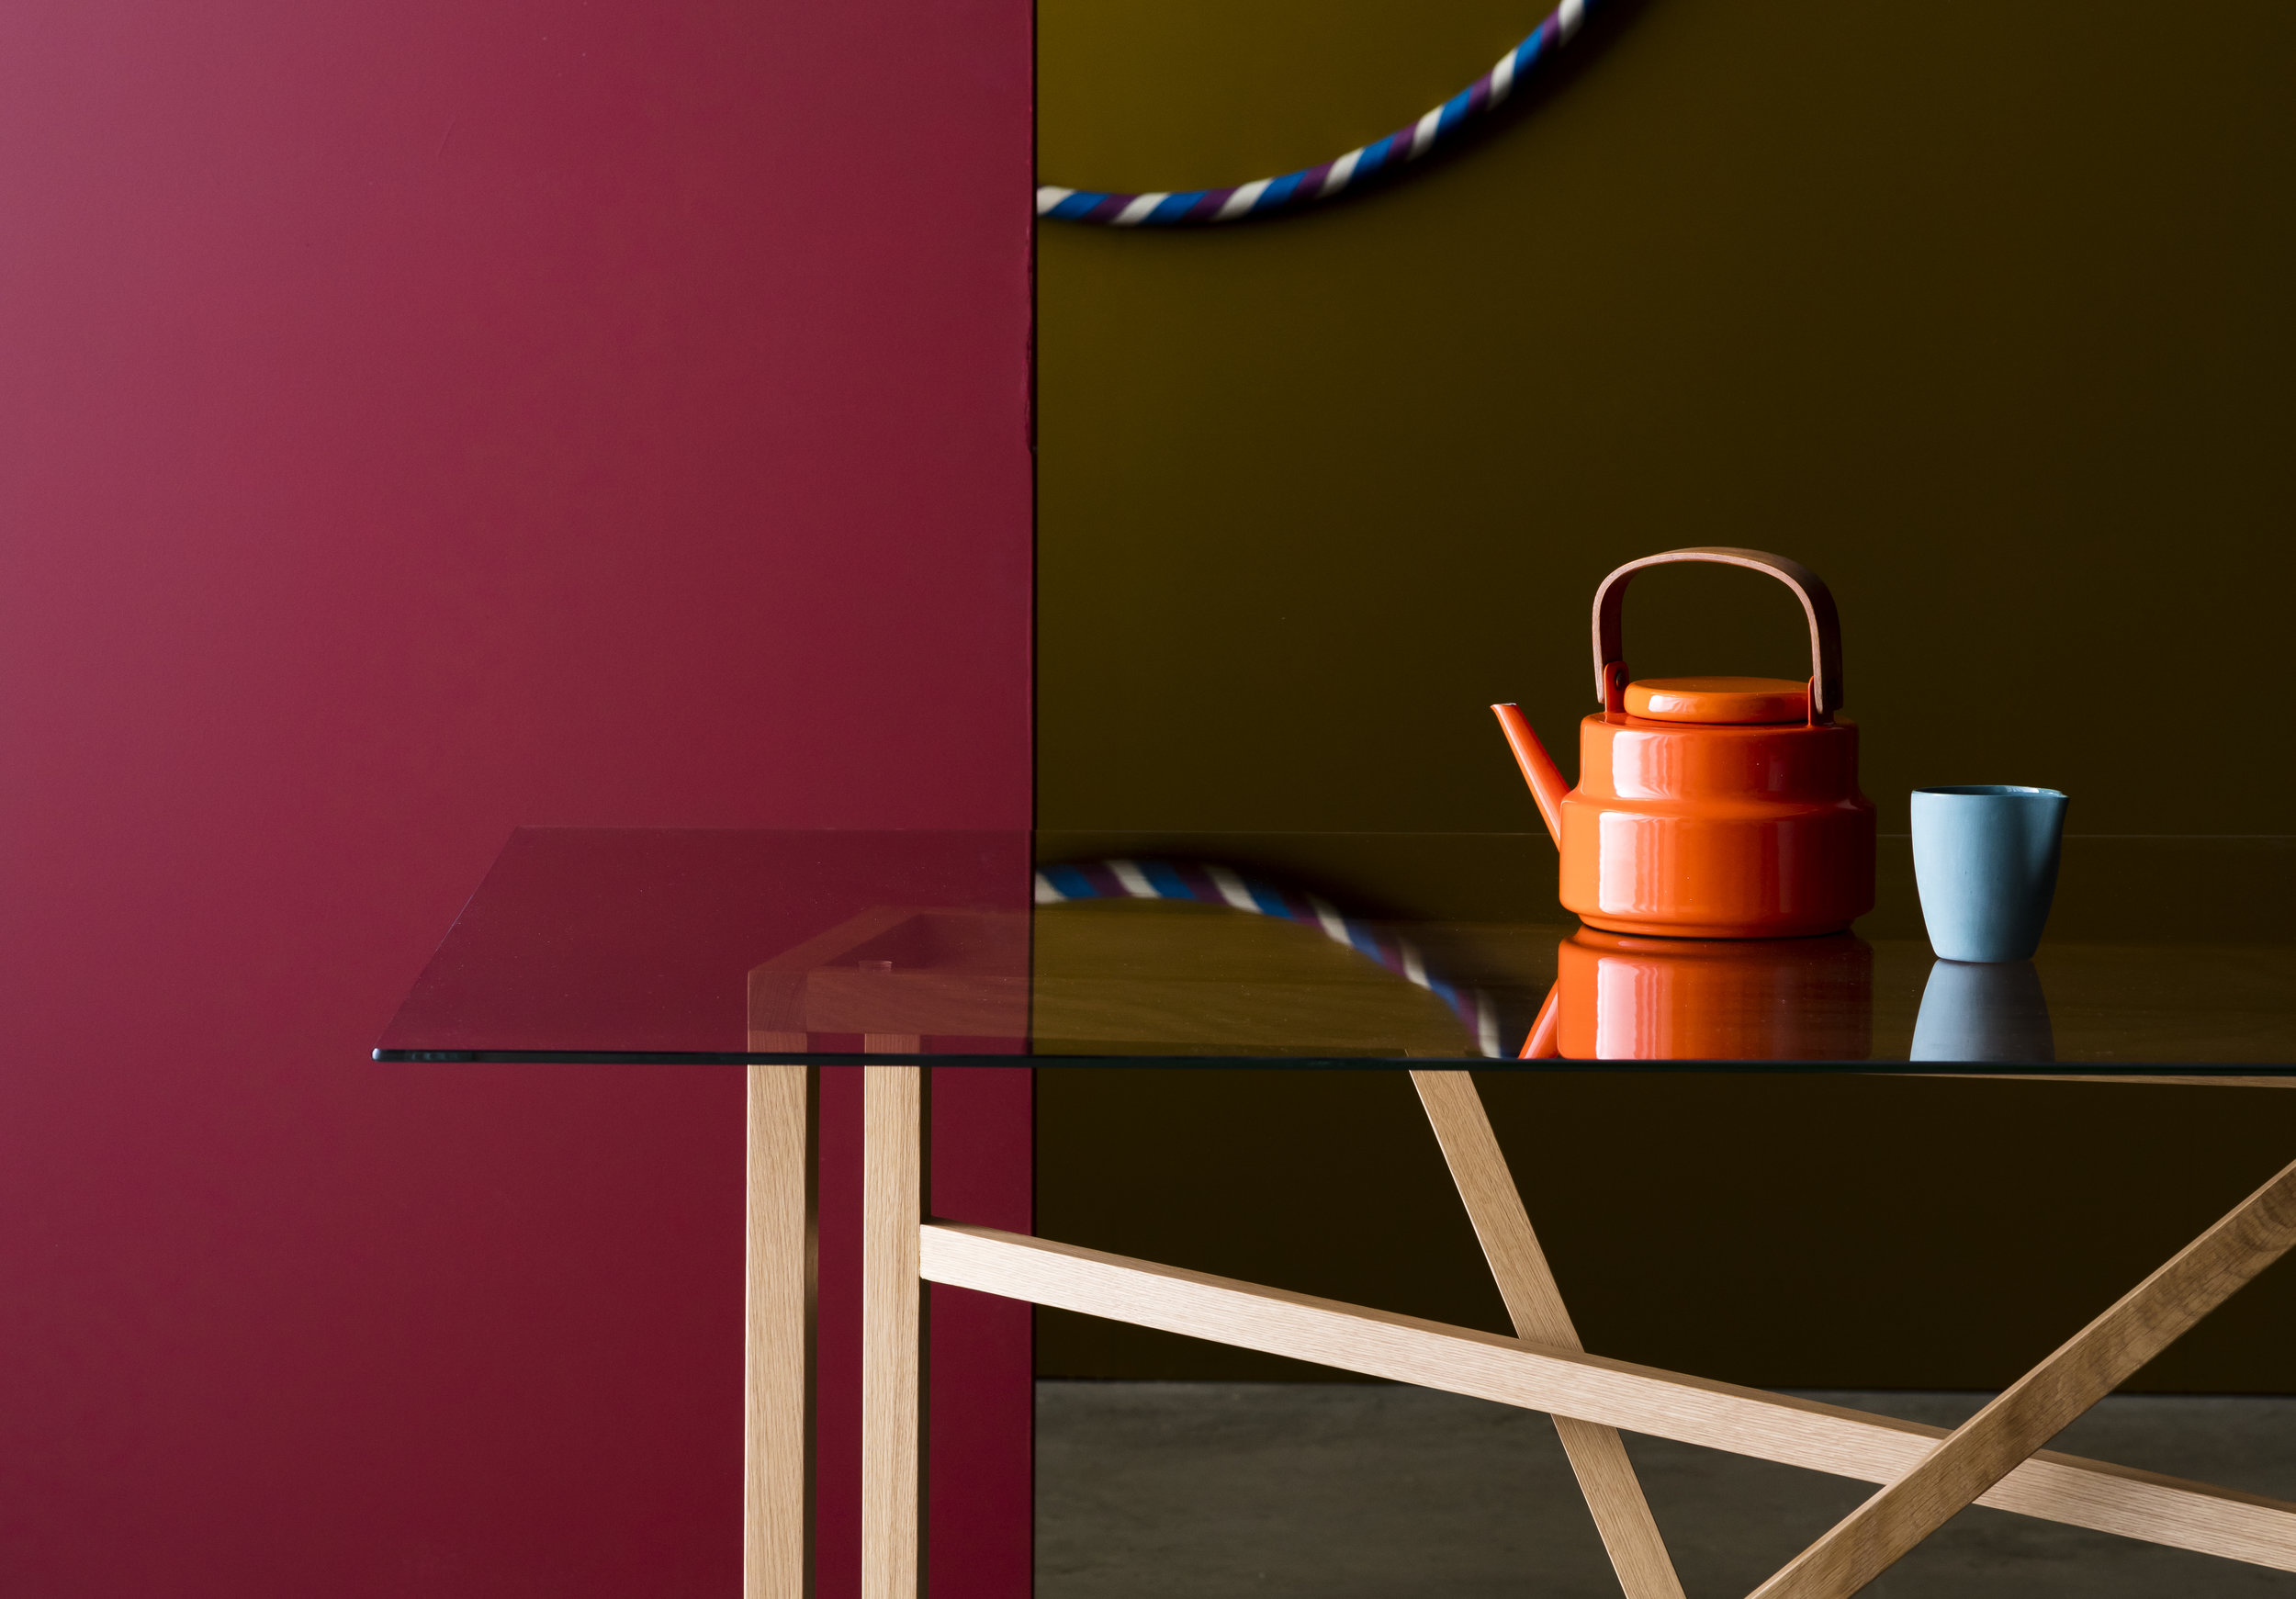 Another_Brand_1x1_Trestle Table